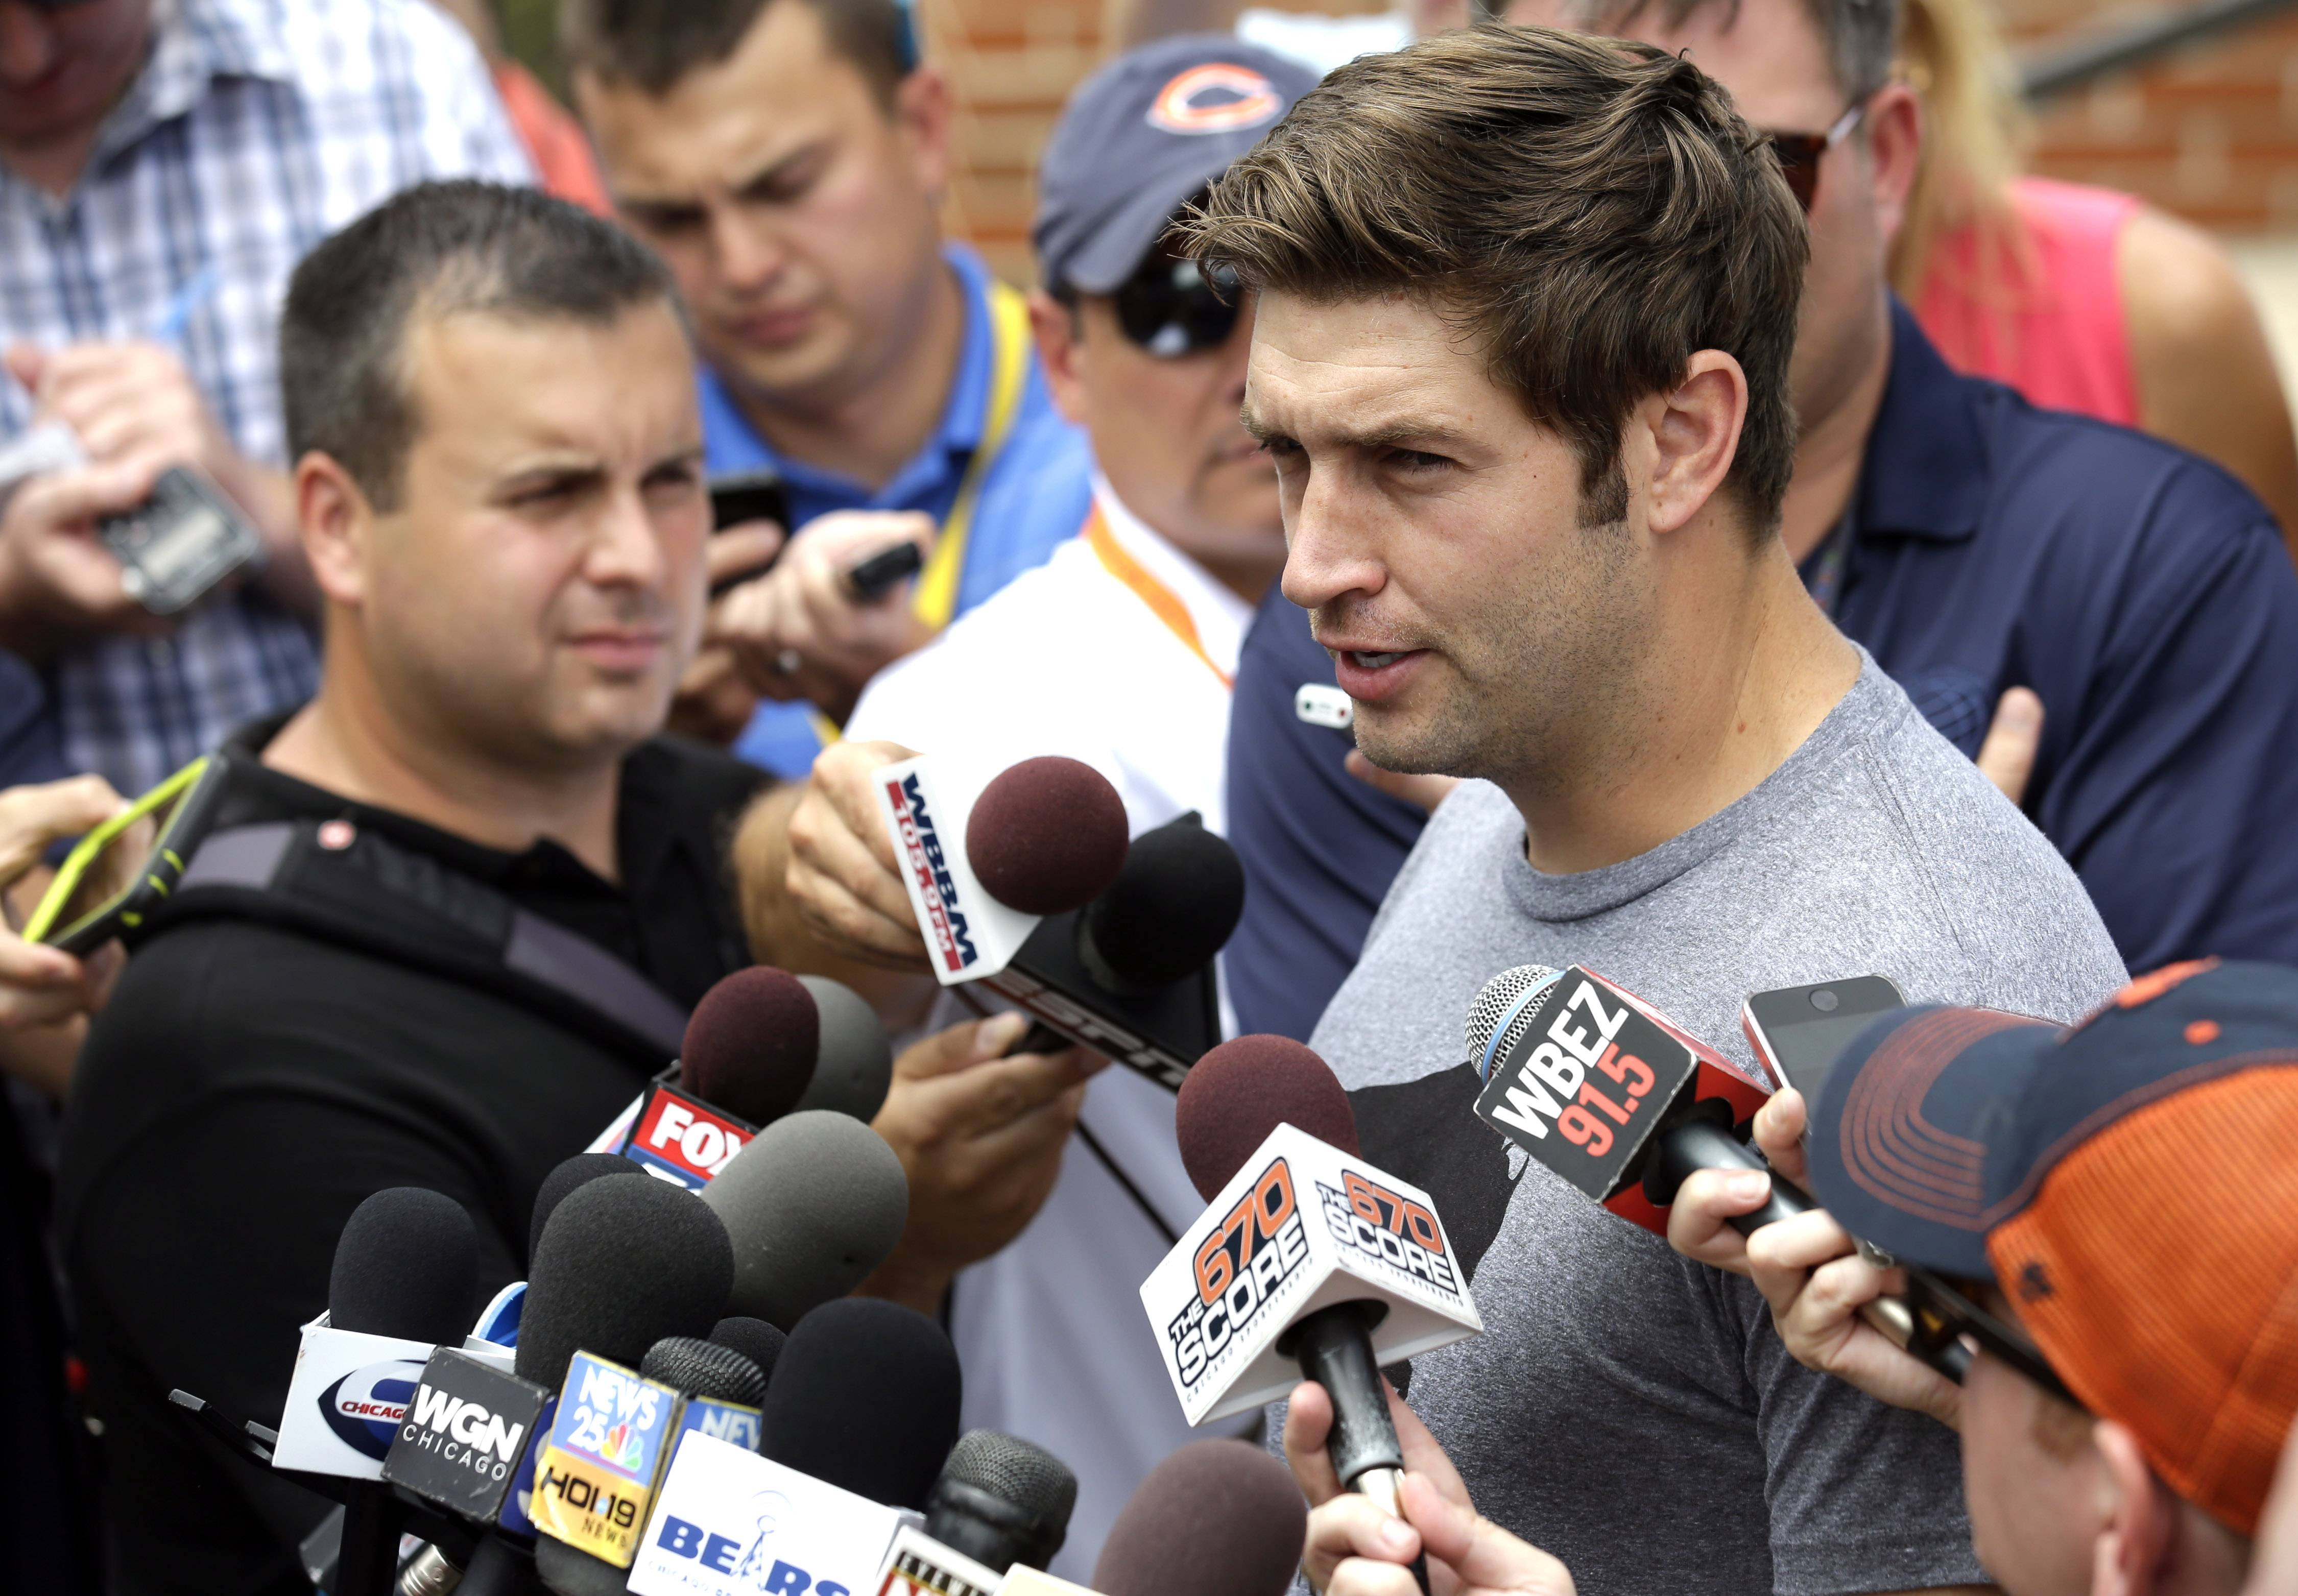 Chicago Bears quarterback Jay Cutler speaks during an NFL football training camp media availability at Olivet Nazarene University, Wednesday, July 29, 2015, in Bourbonnais, Ill.